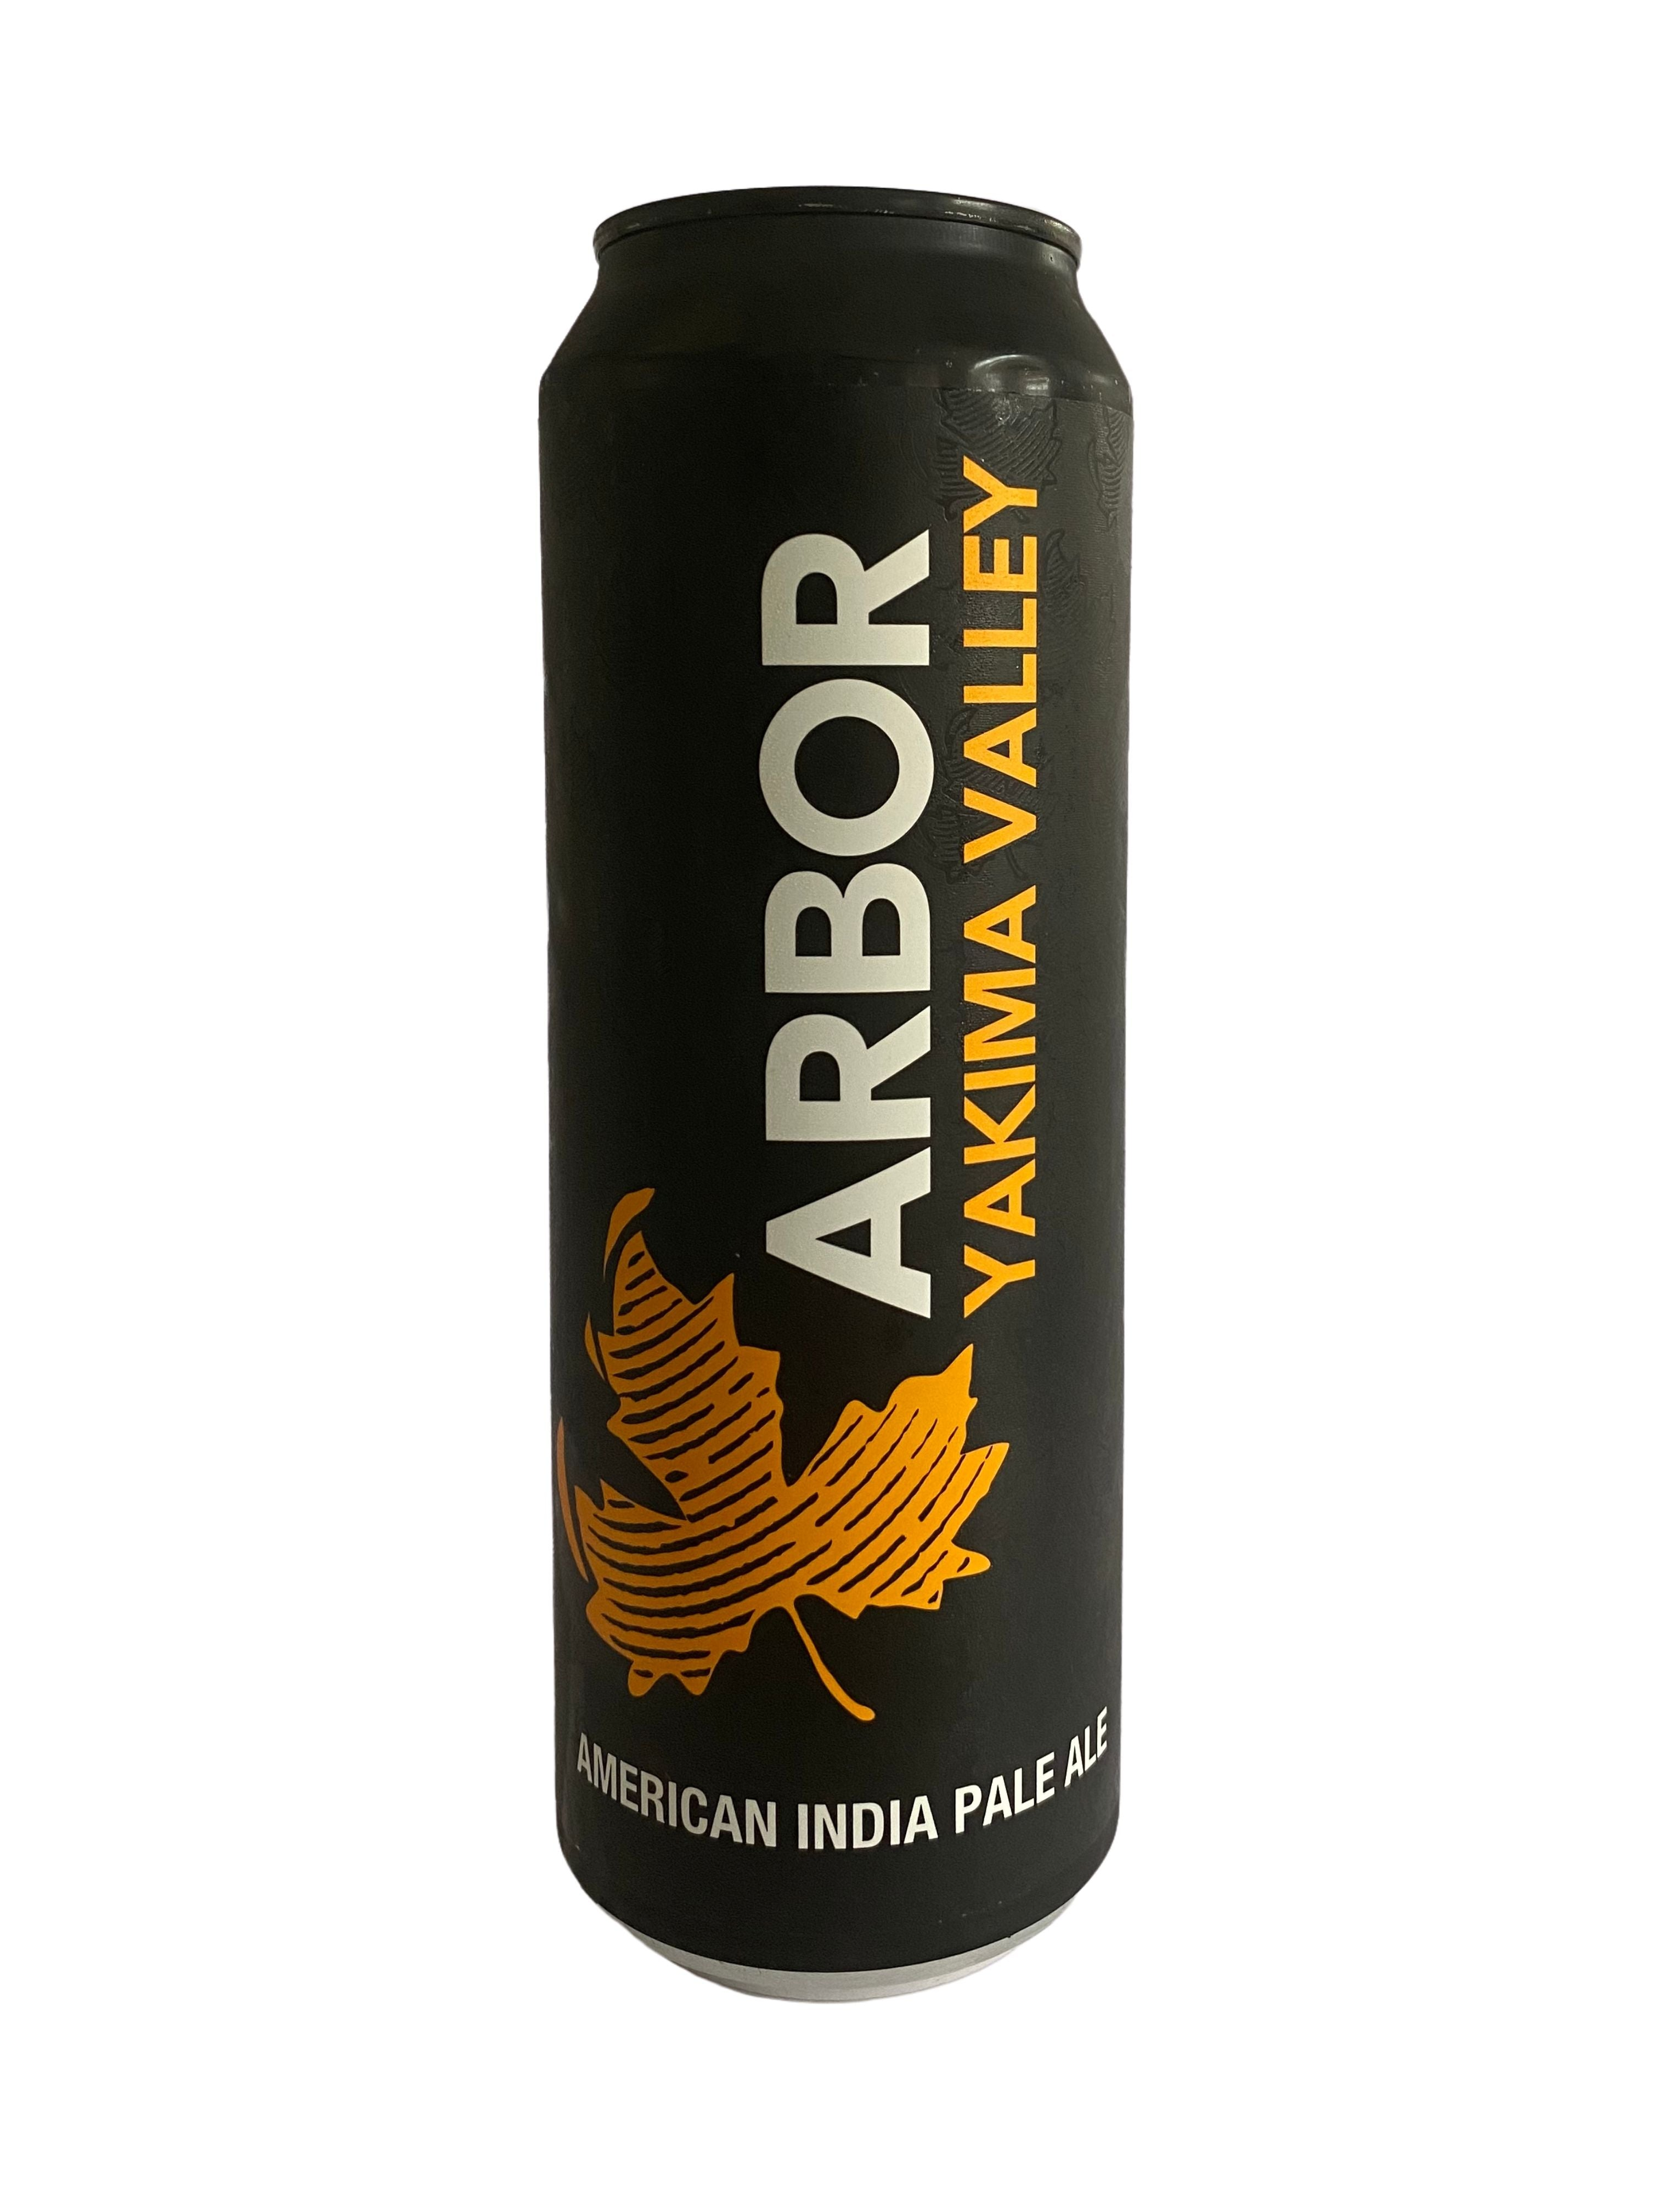 Arbor - Yakima Valley - IPA - 7.0% (3.86 UT) - 568ml